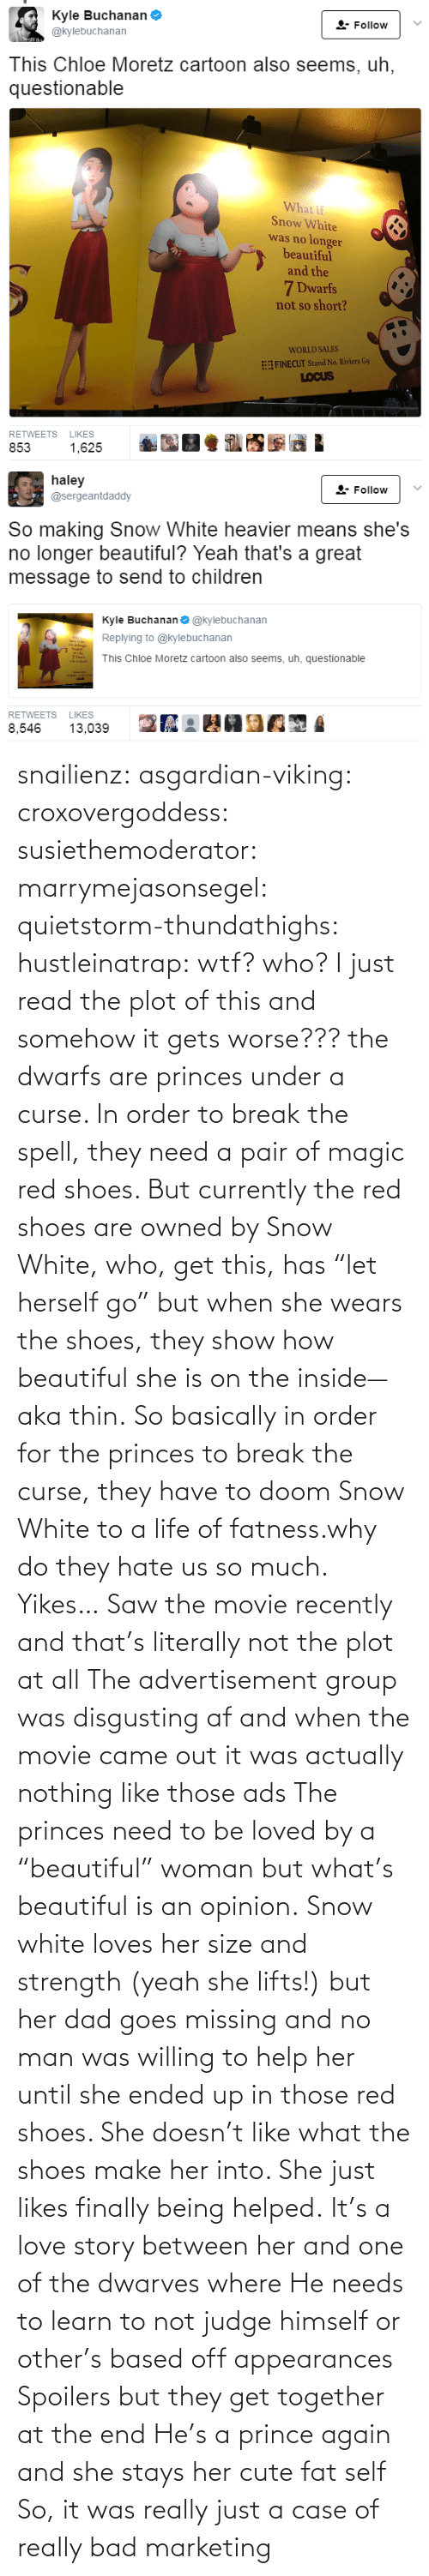 "Movie: snailienz: asgardian-viking:  croxovergoddess:  susiethemoderator:  marrymejasonsegel:   quietstorm-thundathighs:  hustleinatrap: wtf?  who?   I just read the plot of this and somehow it gets worse??? the dwarfs are princes under a curse. In order to break the spell, they need a pair of magic red shoes. But currently the red shoes are owned by Snow White, who, get this, has ""let herself go"" but when she wears the shoes, they show how beautiful she is on the inside—aka thin. So basically in order for the princes to break the curse, they have to doom Snow White to a life of fatness.why do they hate us so much.   Yikes…    Saw the movie recently and that's literally not the plot at all The advertisement group was disgusting af and when the movie came out it was actually nothing like those ads The princes need to be loved by a ""beautiful"" woman but what's beautiful is an opinion. Snow white loves her size and strength (yeah she lifts!) but her dad goes missing and no man was willing to help her until she ended up in those red shoes. She doesn't like what the shoes make her into. She just likes finally being helped. It's a love story between her and one of the dwarves where He needs to learn to not judge himself or other's based off appearances  Spoilers but they get together at the end He's a prince again and she stays her cute fat self  So, it was really just a case of really bad marketing"